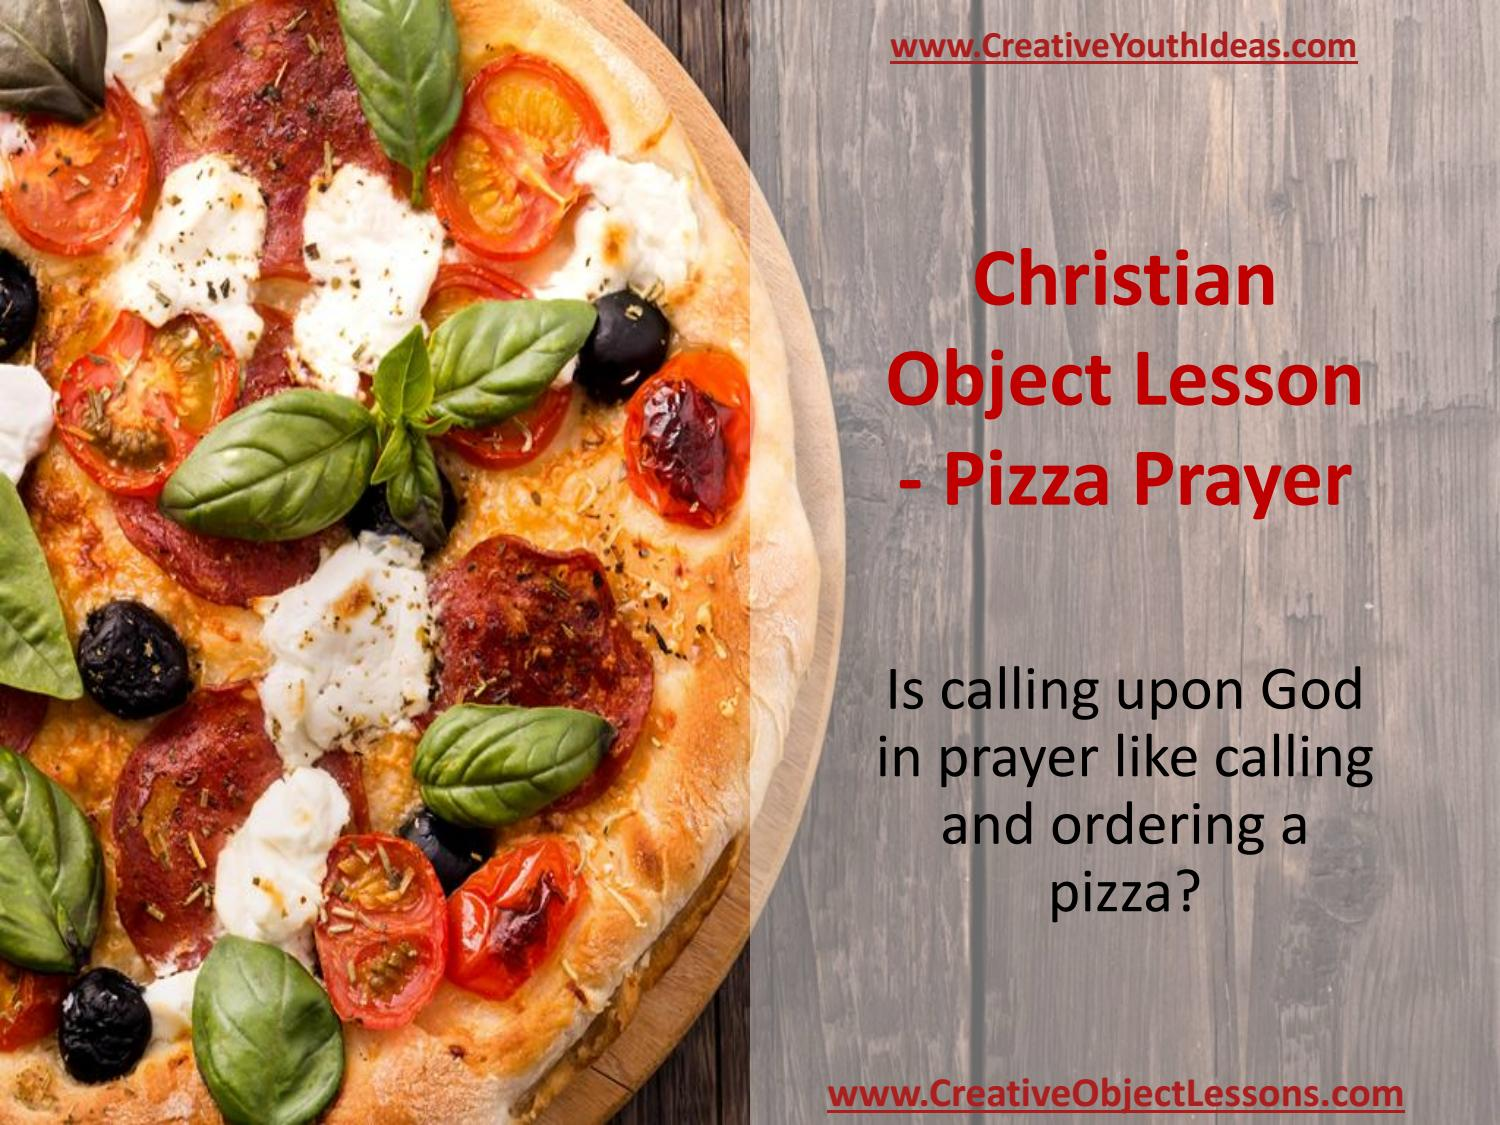 Christian Object Lesson - Pizza Prayer by Ken Sapp - issuu